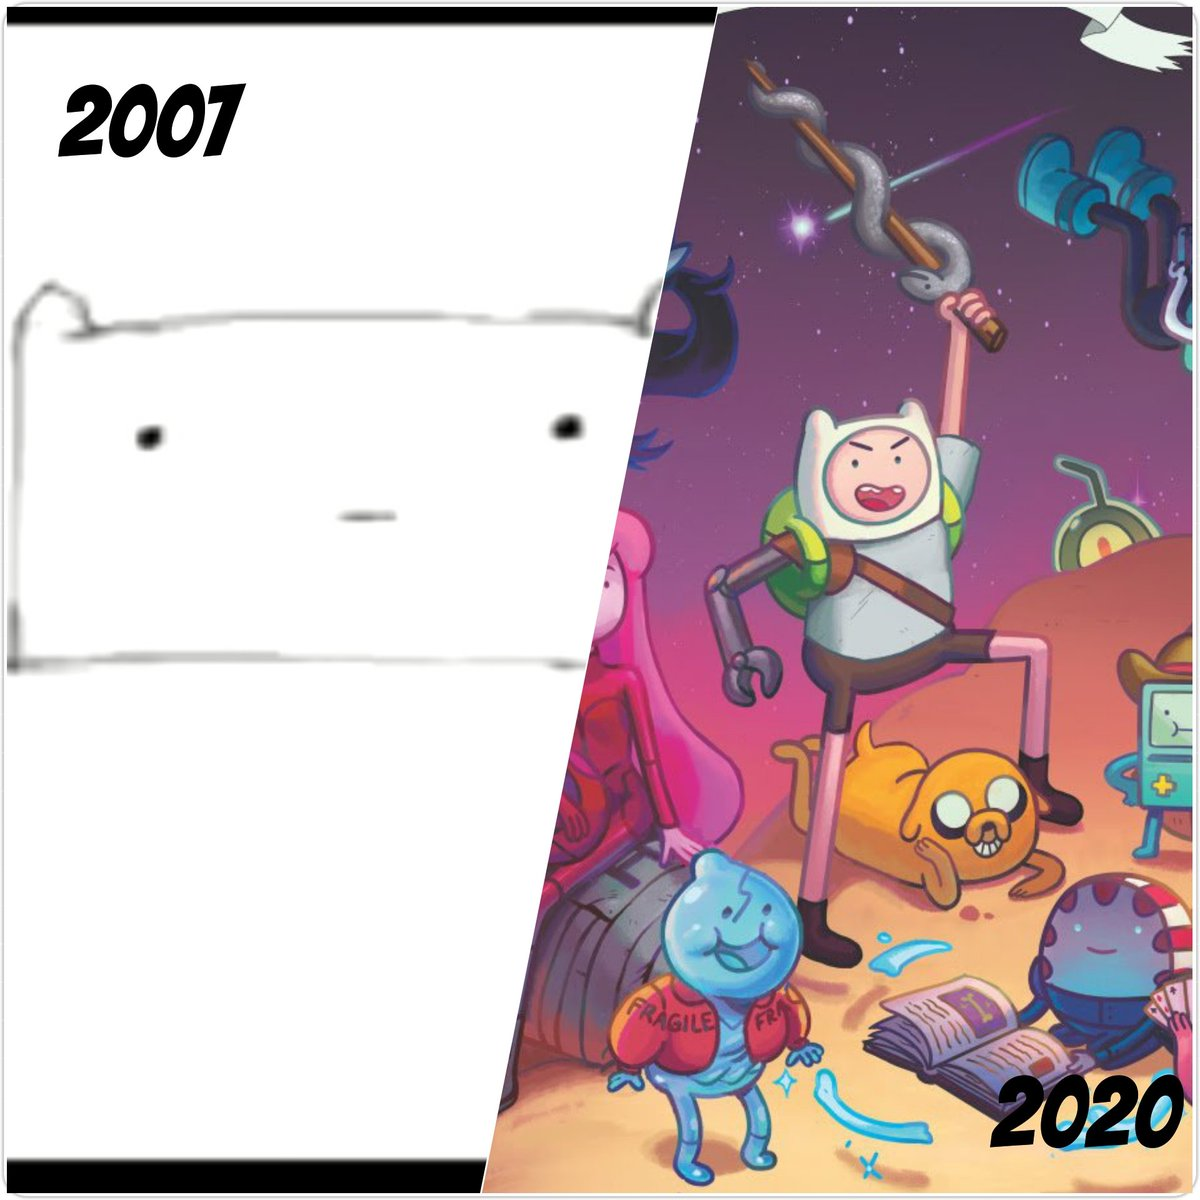 The Tribute Evolution of pendleton ward  2007-Since Creatores @buenothebear @BravestWarriors @adventuretimeUS #adventuretime #BravestWarriors Barrista:(2007) Adventure Time: Distant Lands:(2020)